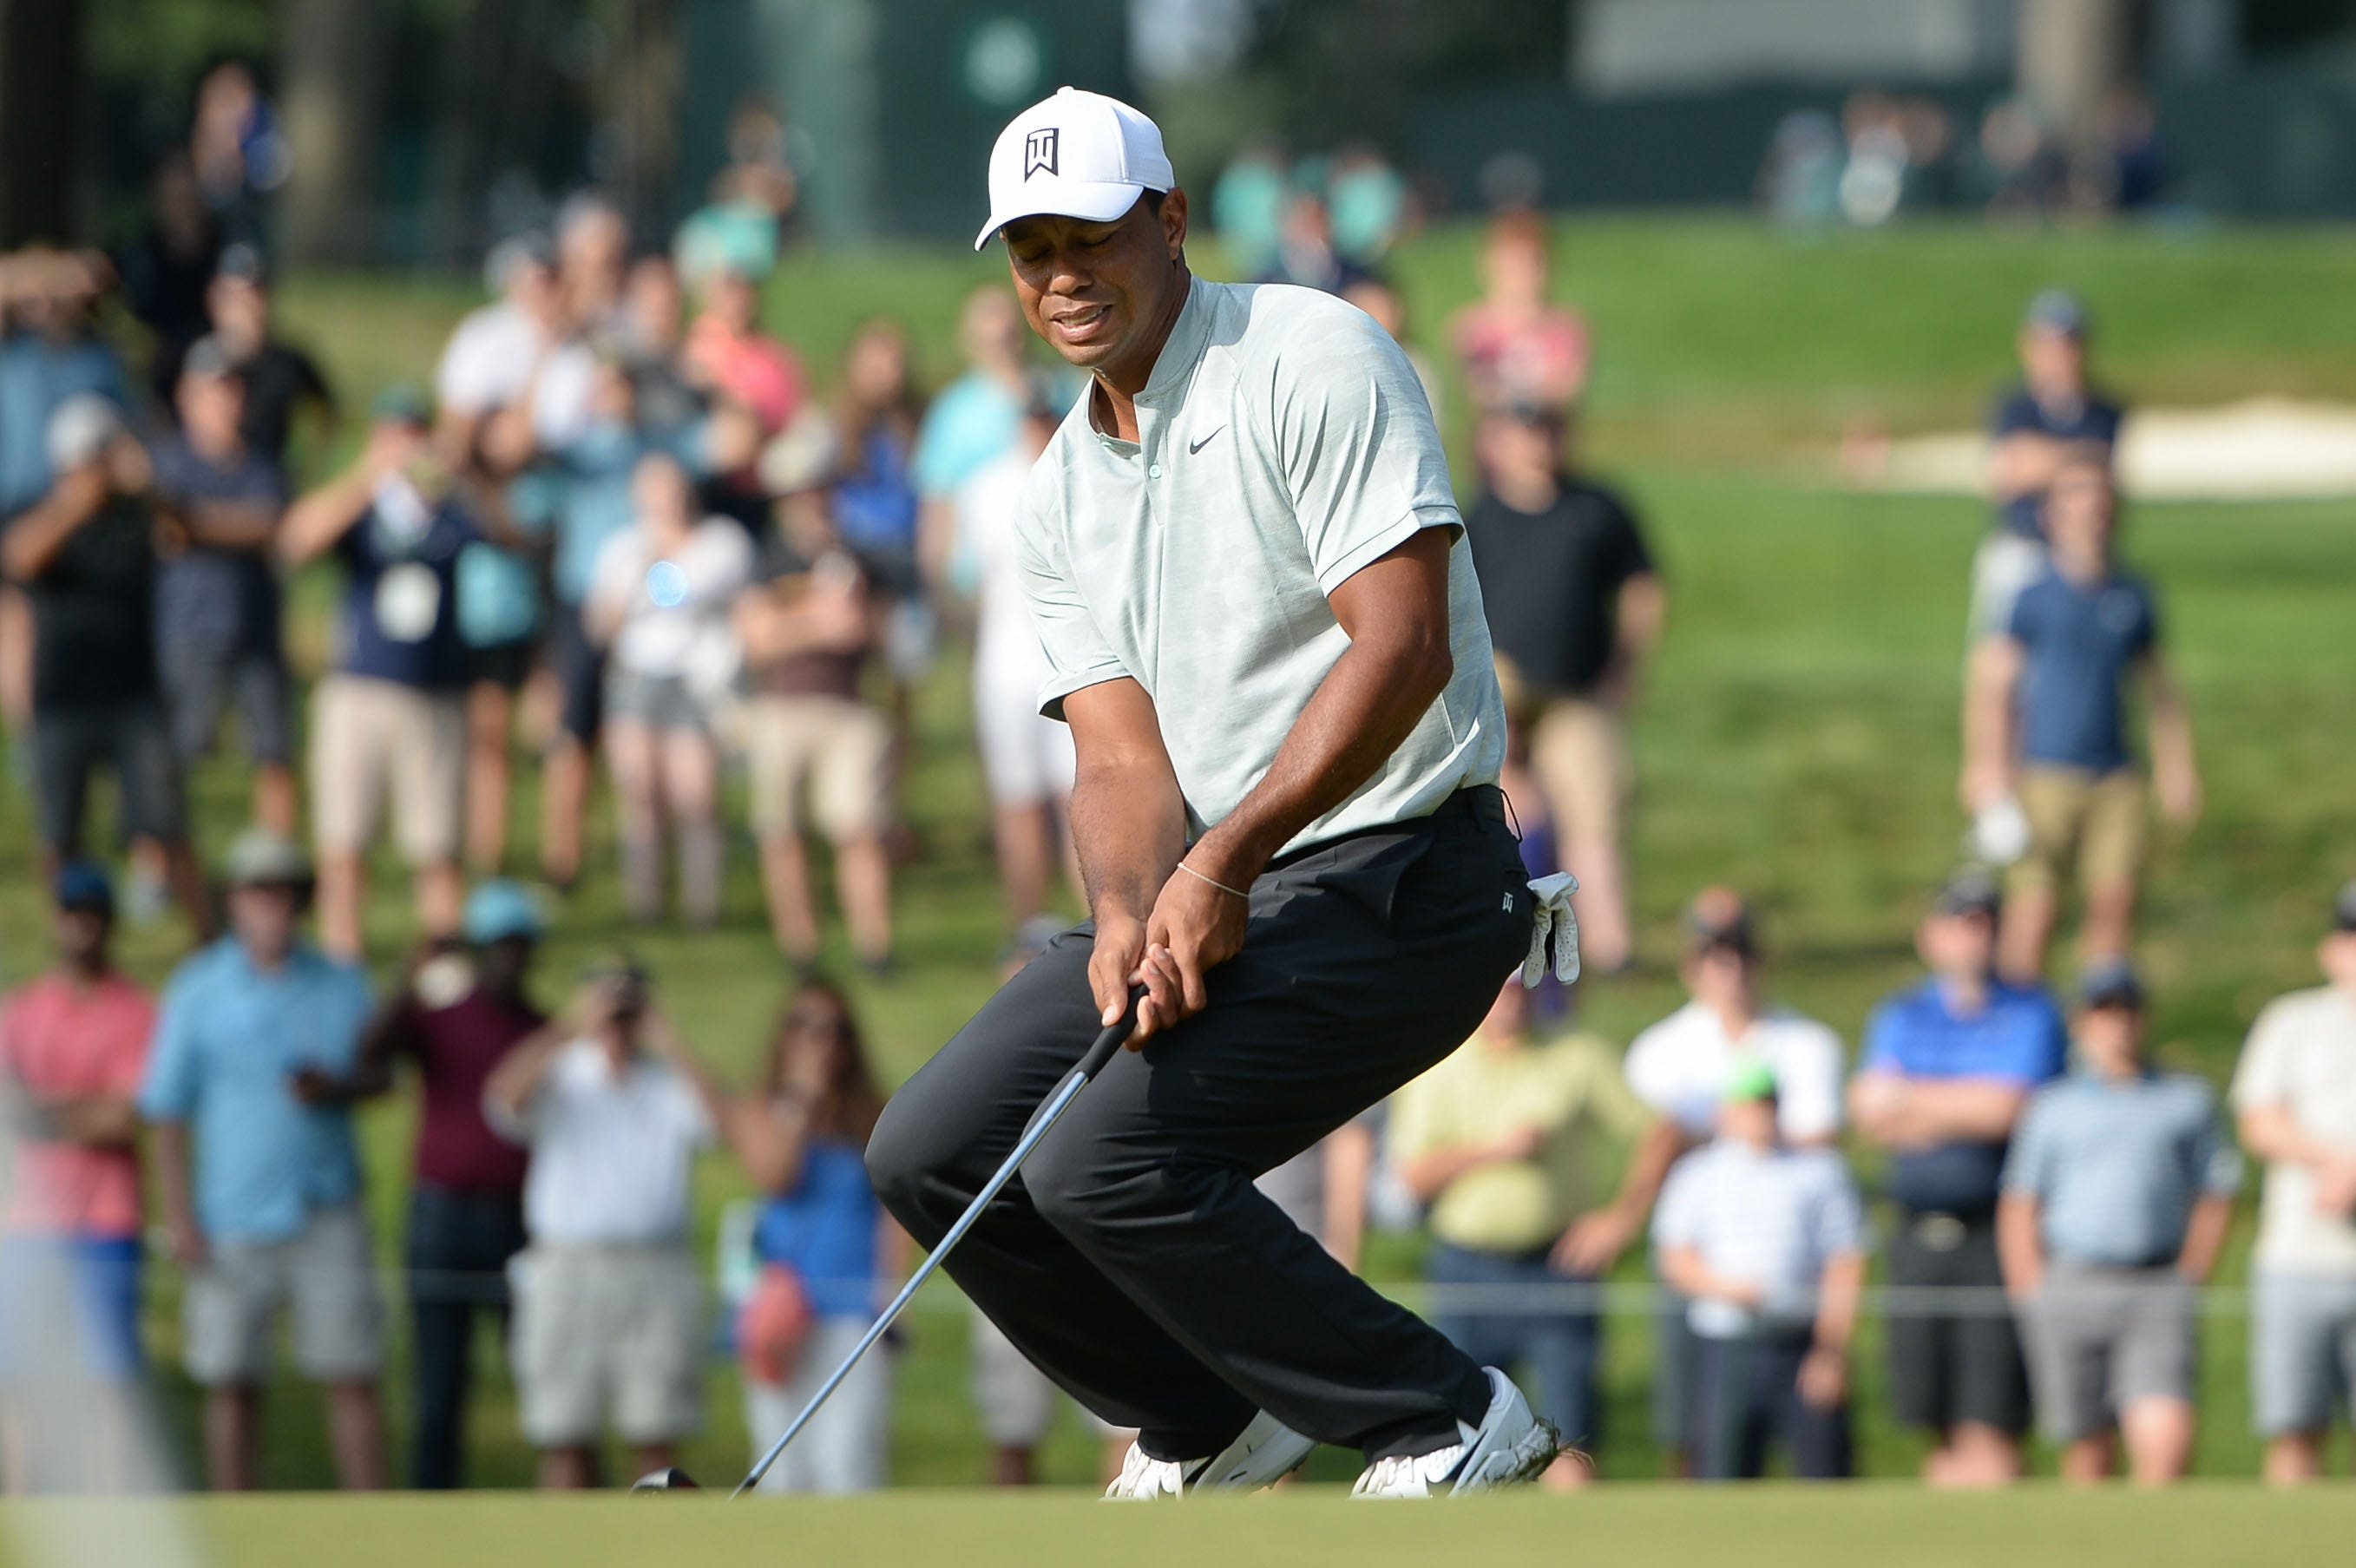 Tiger Tracker: Follow Tiger Woods' Sunday round shot-by-shot at the Northern Trust